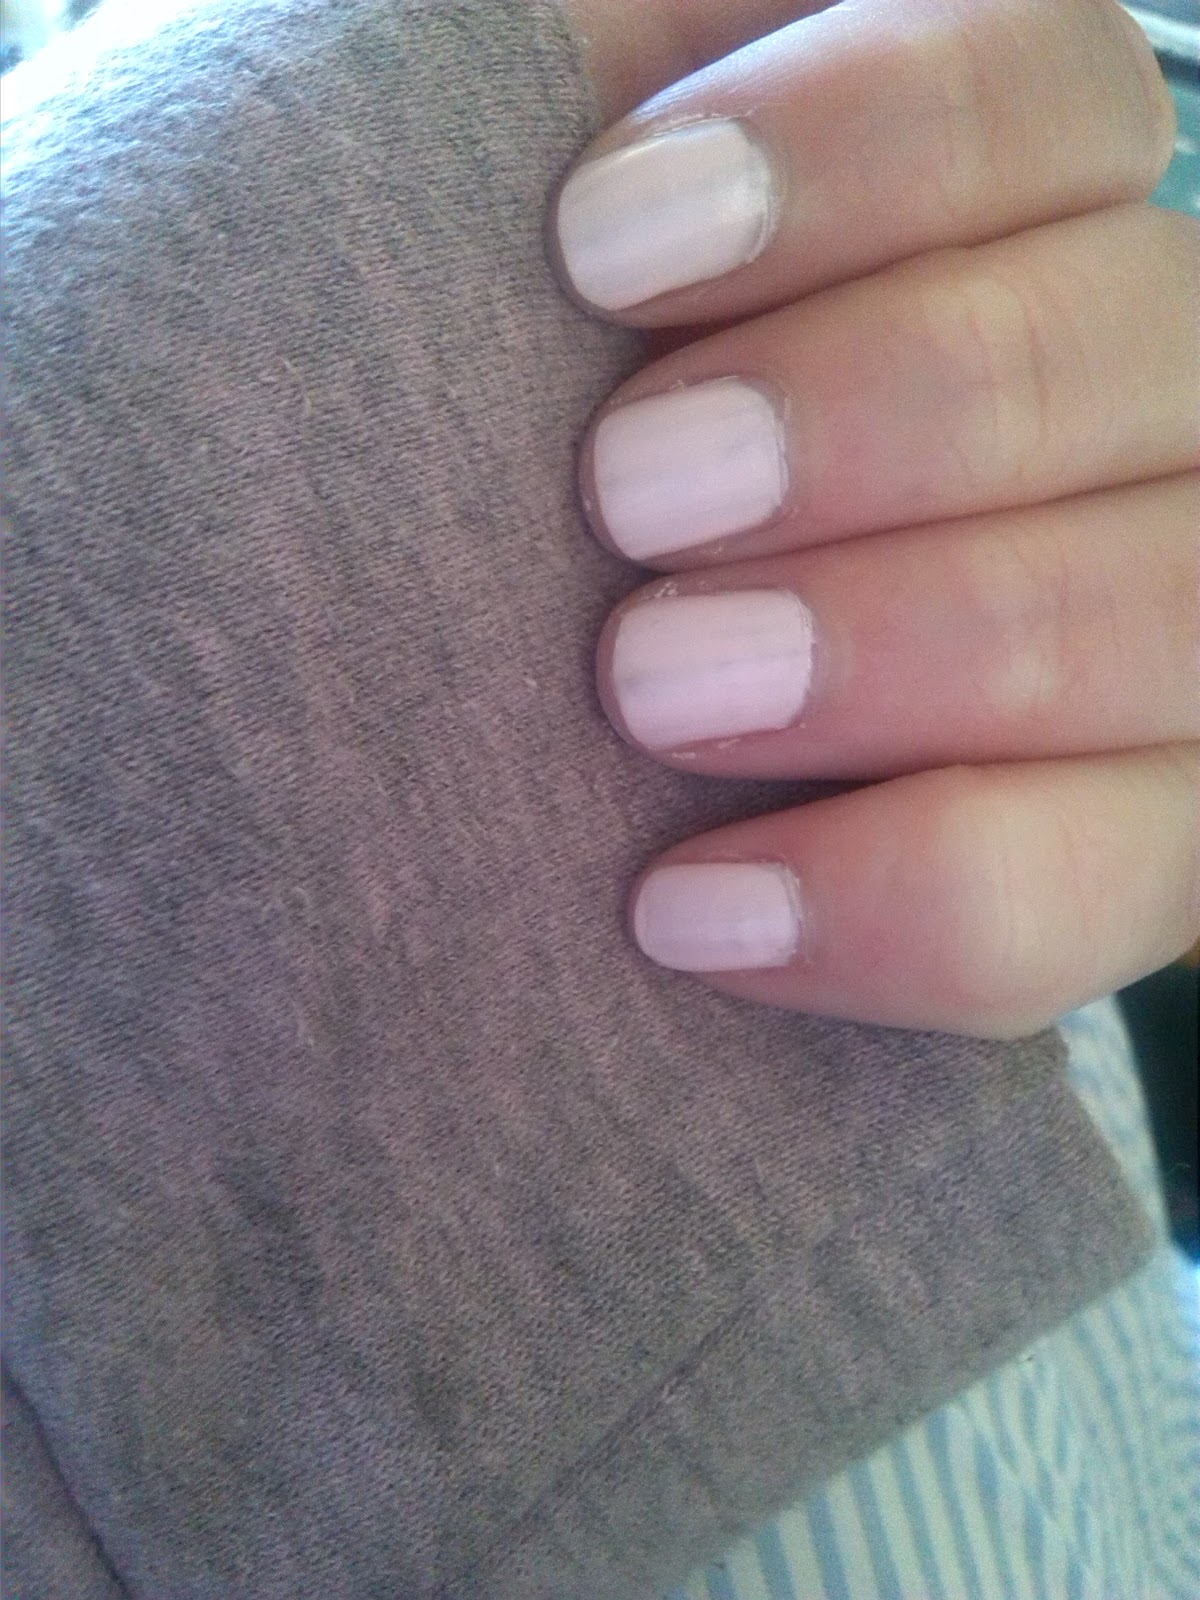 Fingernails painted in Lose Your Lingerie from Rimmel